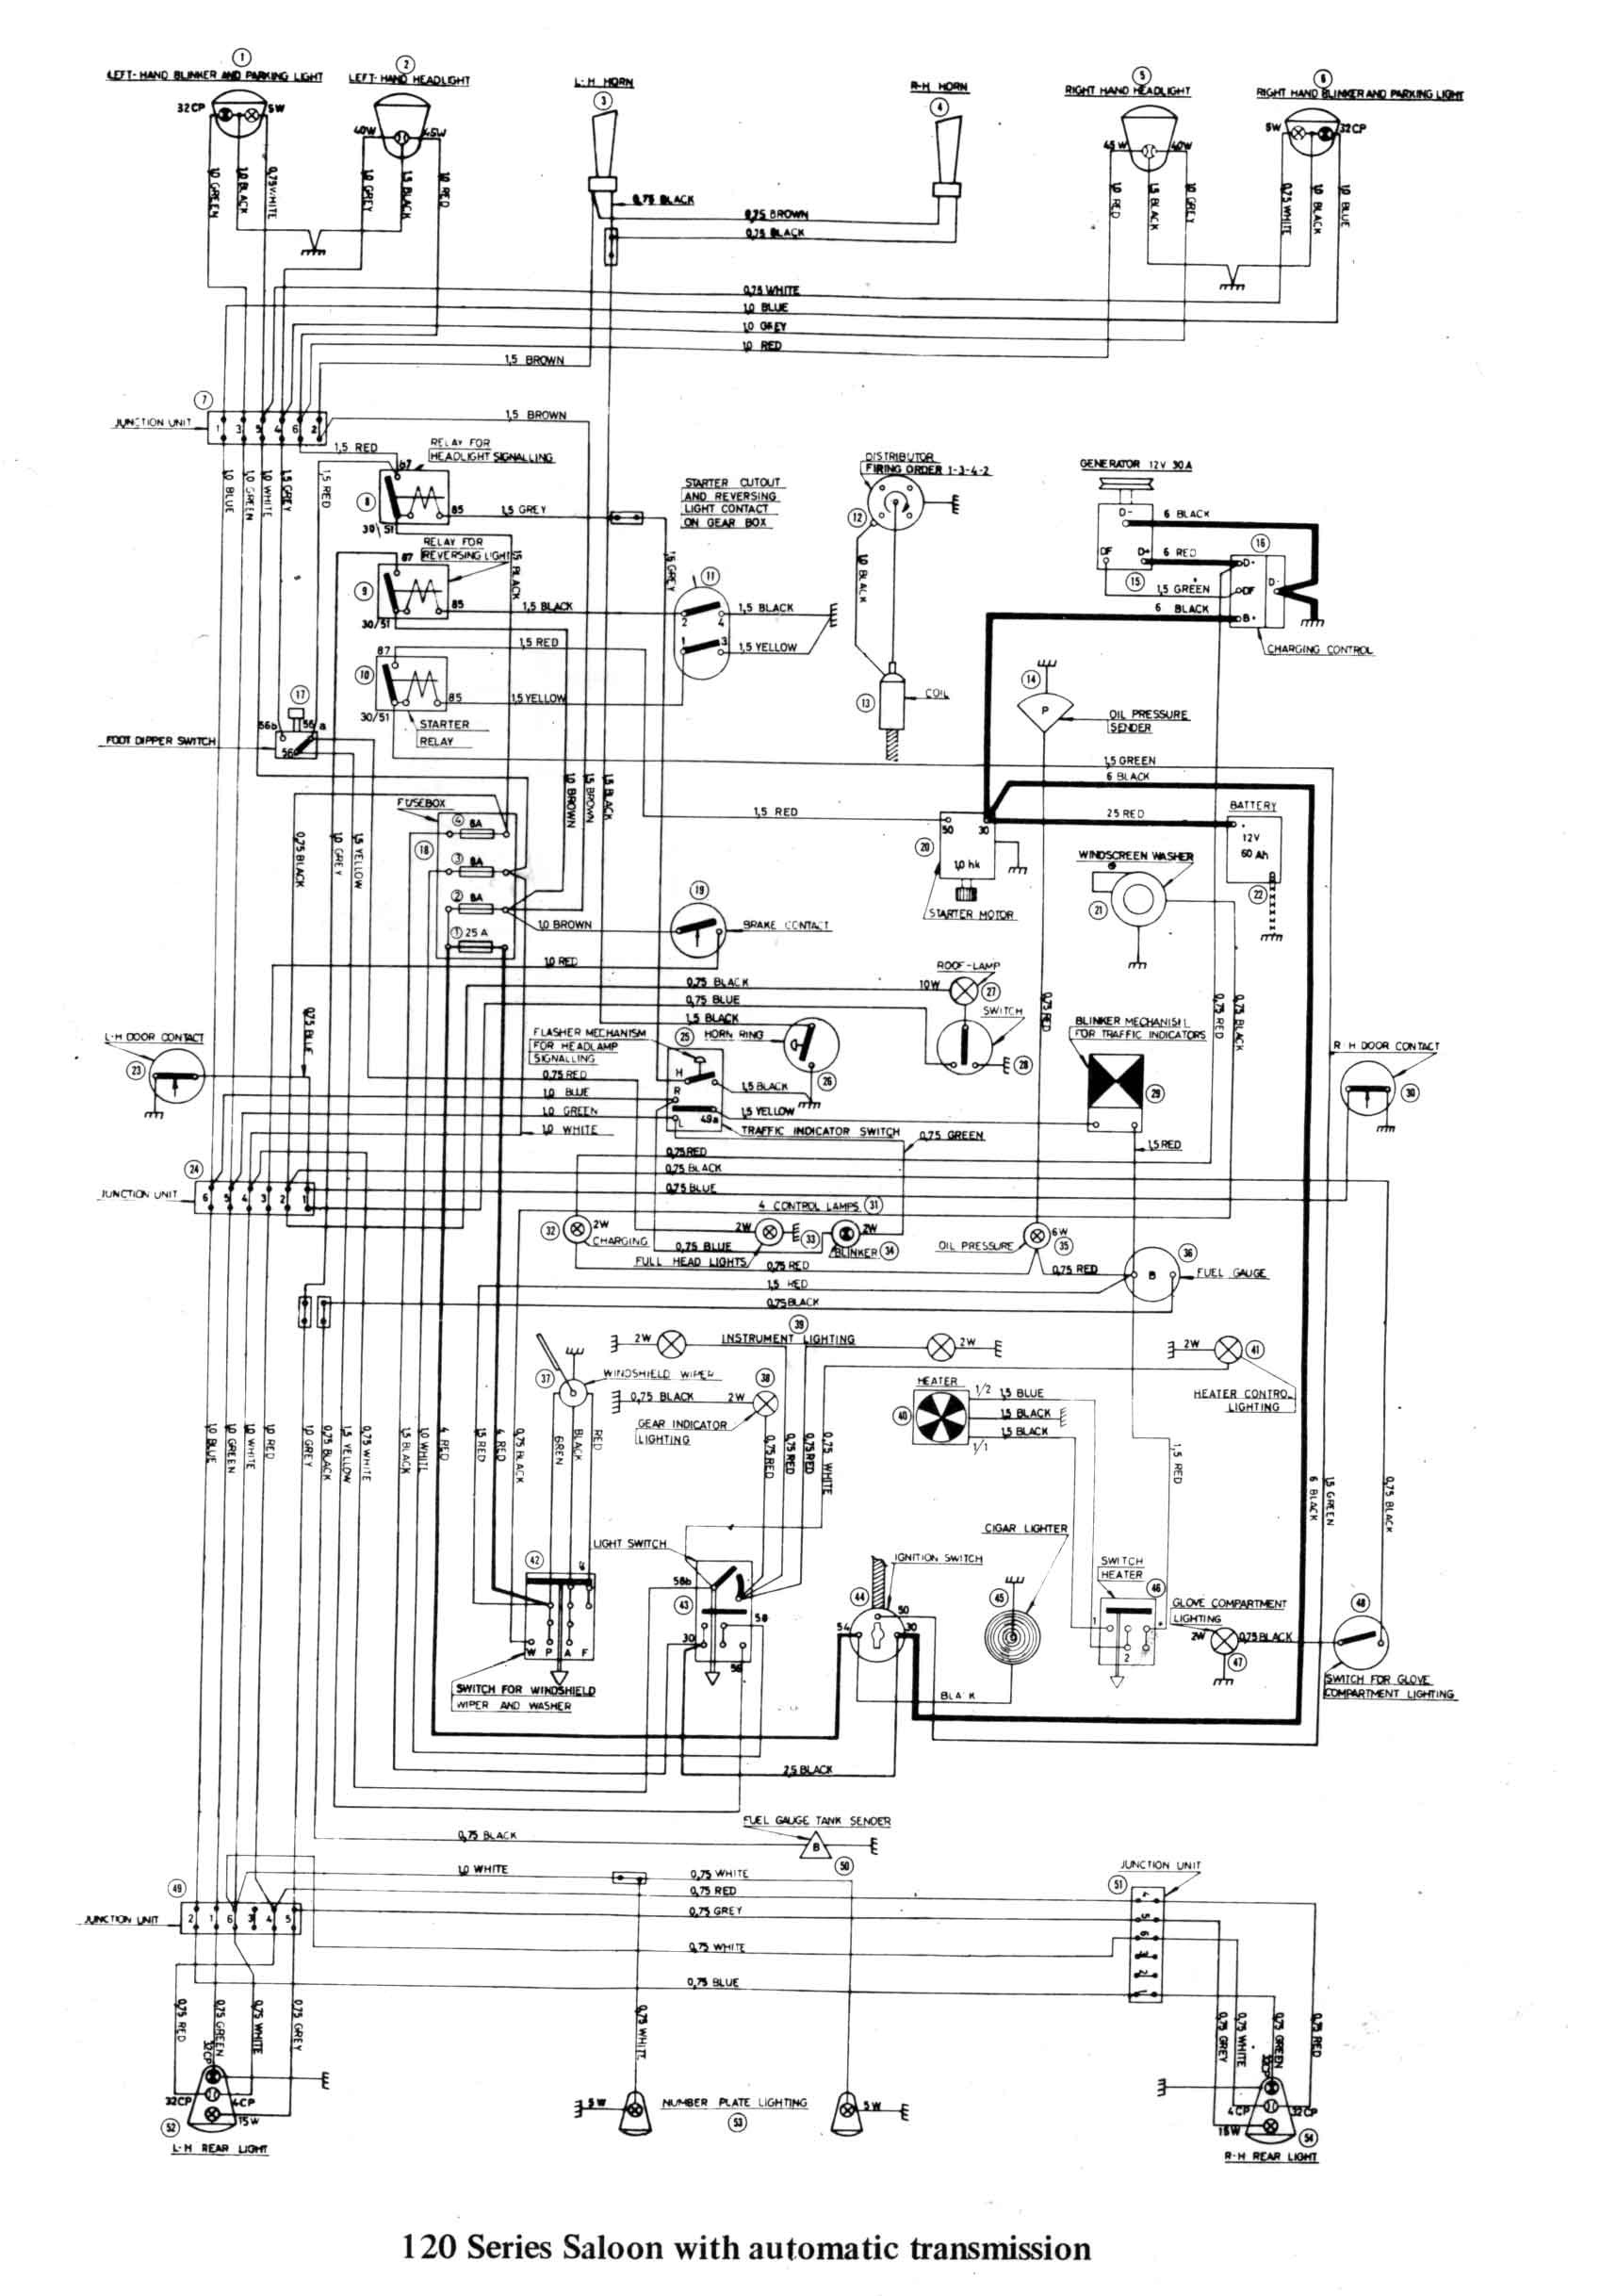 1999 Volvo V70 Trailer Wiring Diagram